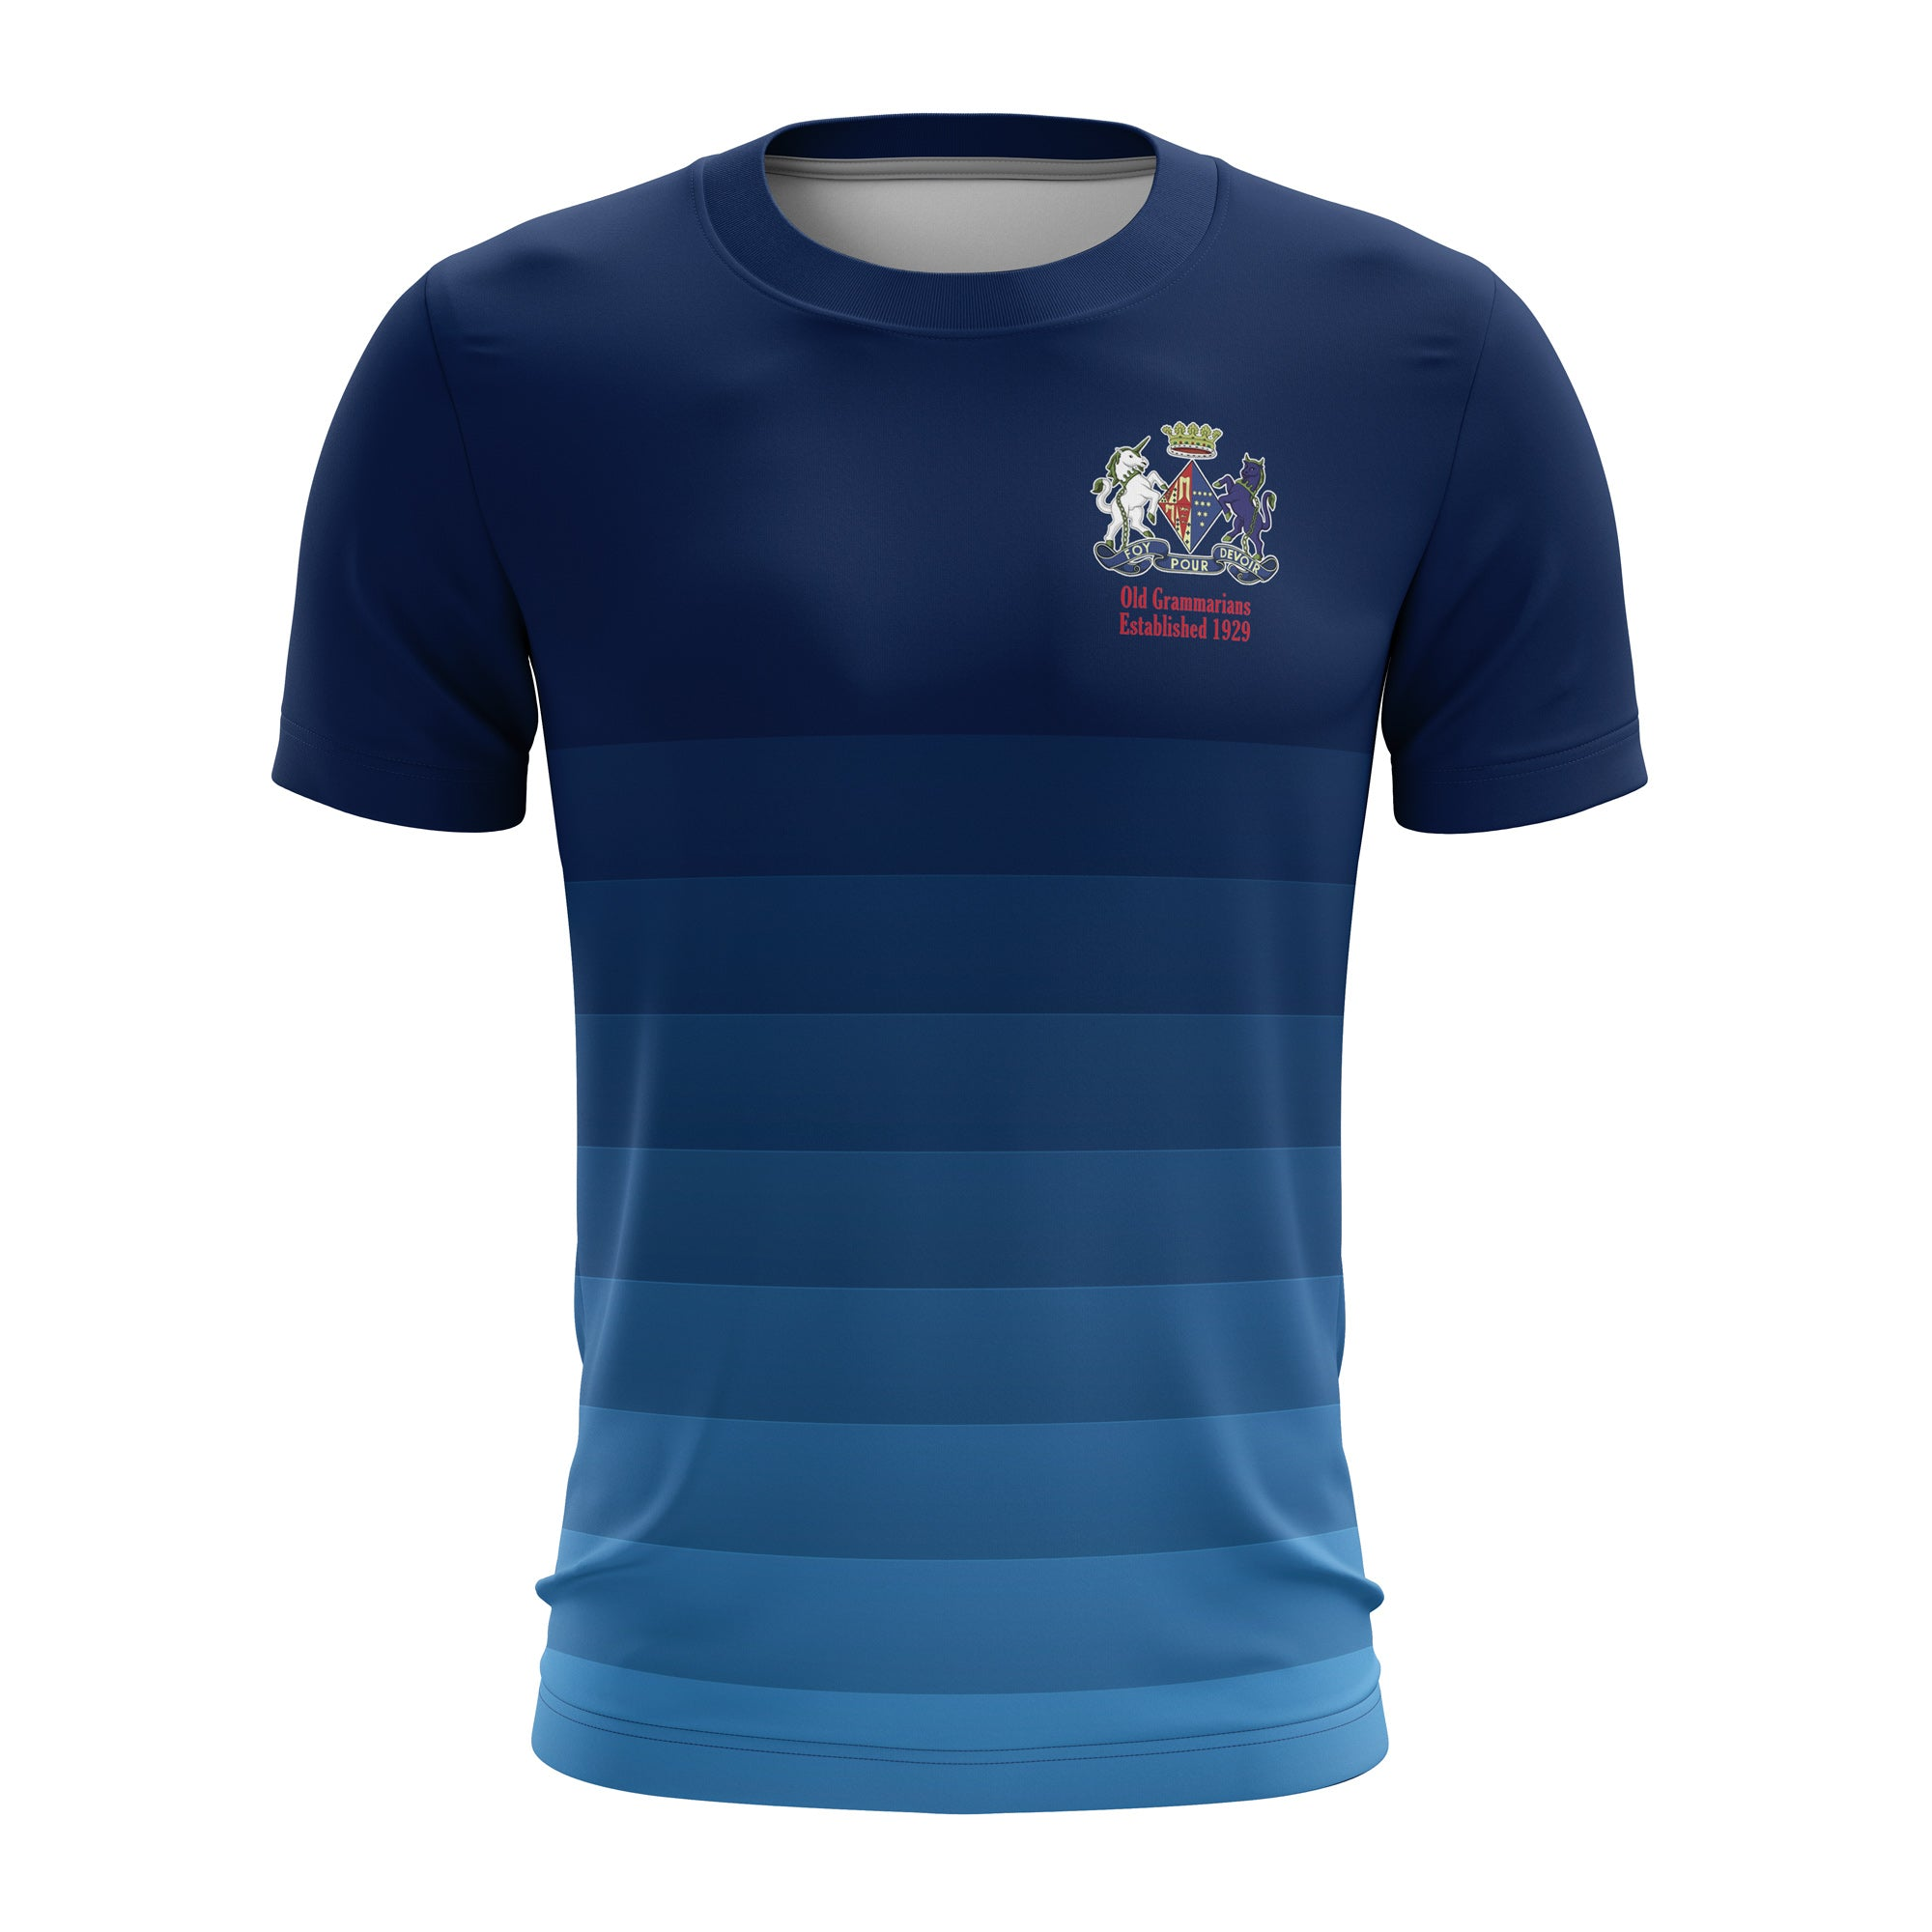 OGRFC Adult - Navy Training Top